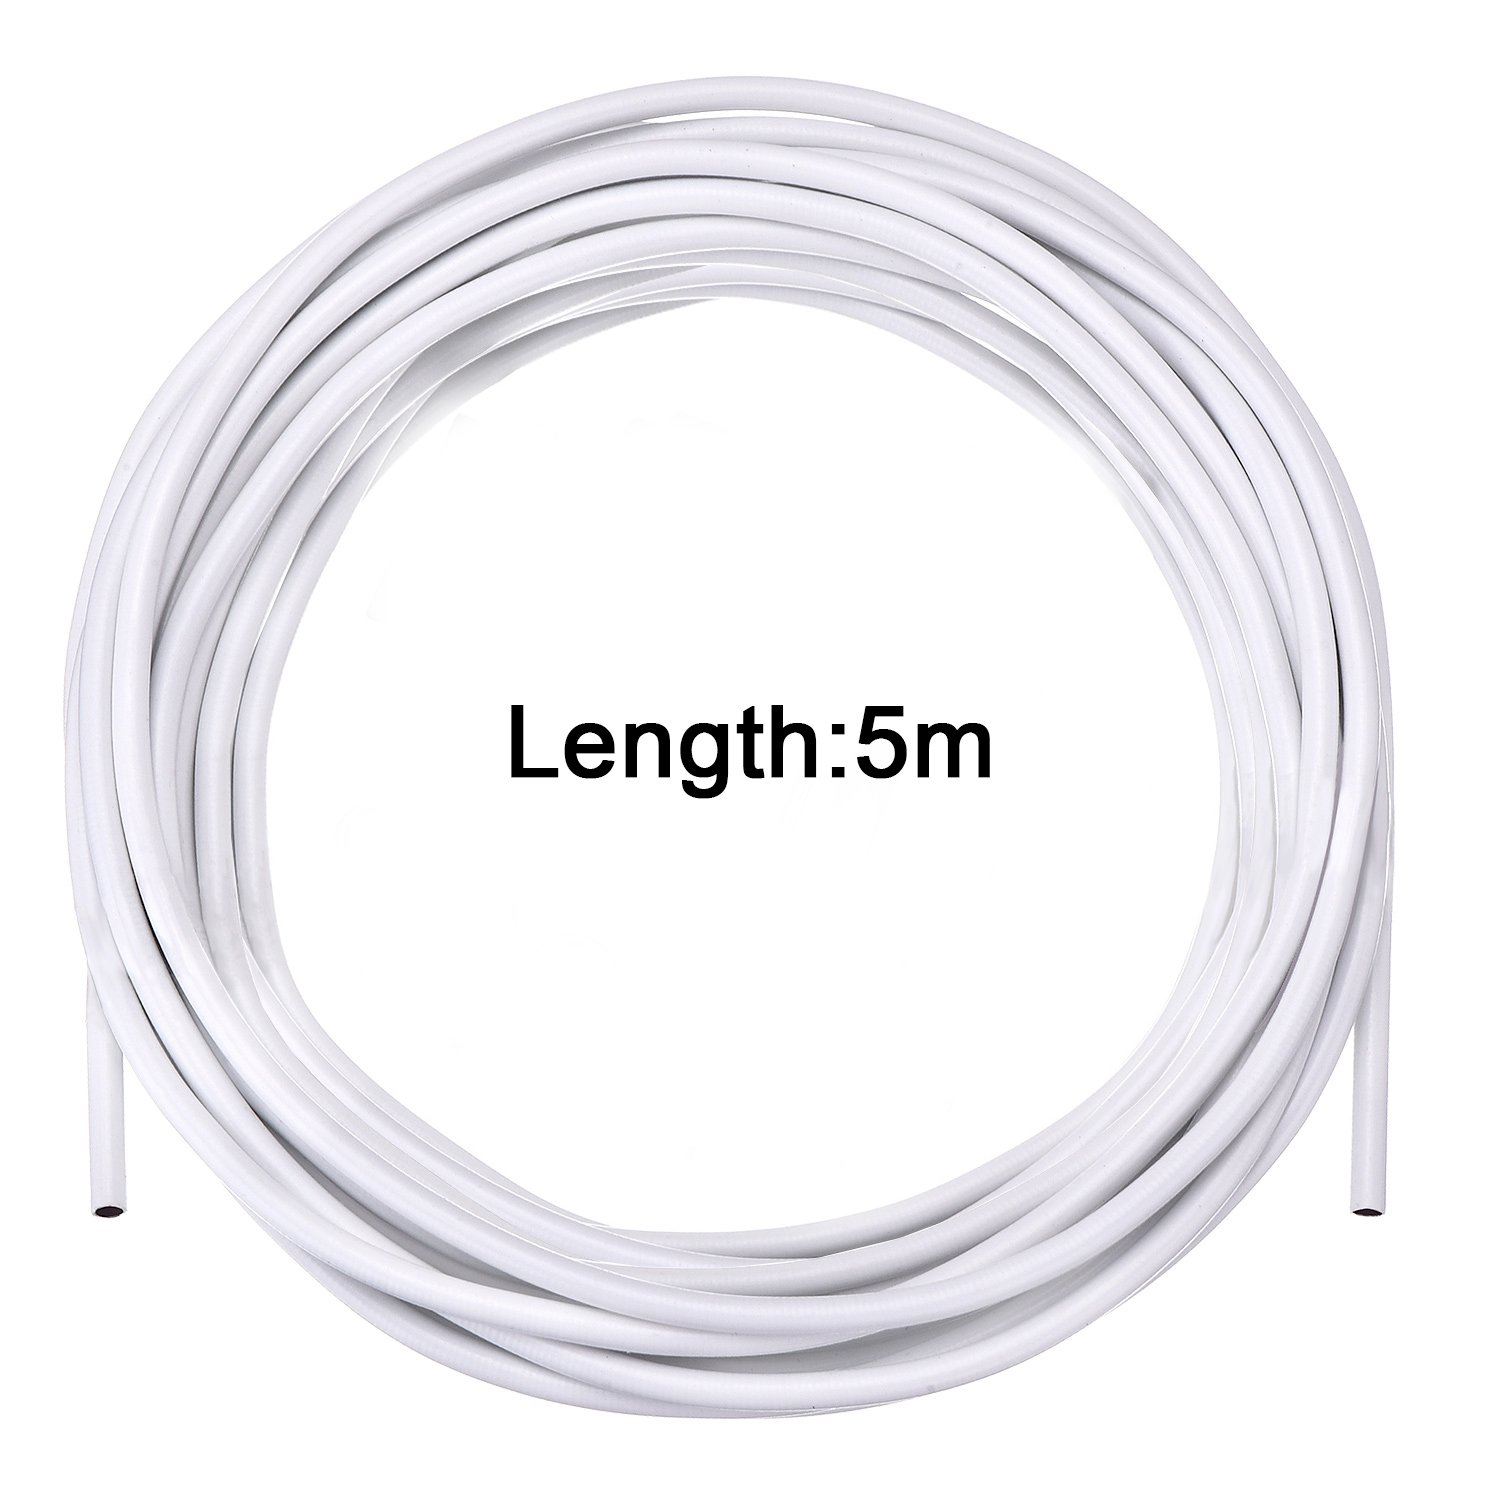 Amazon.com: Bememo White Curtain Wire Hanging Cord Kit with 8 Pieces ...